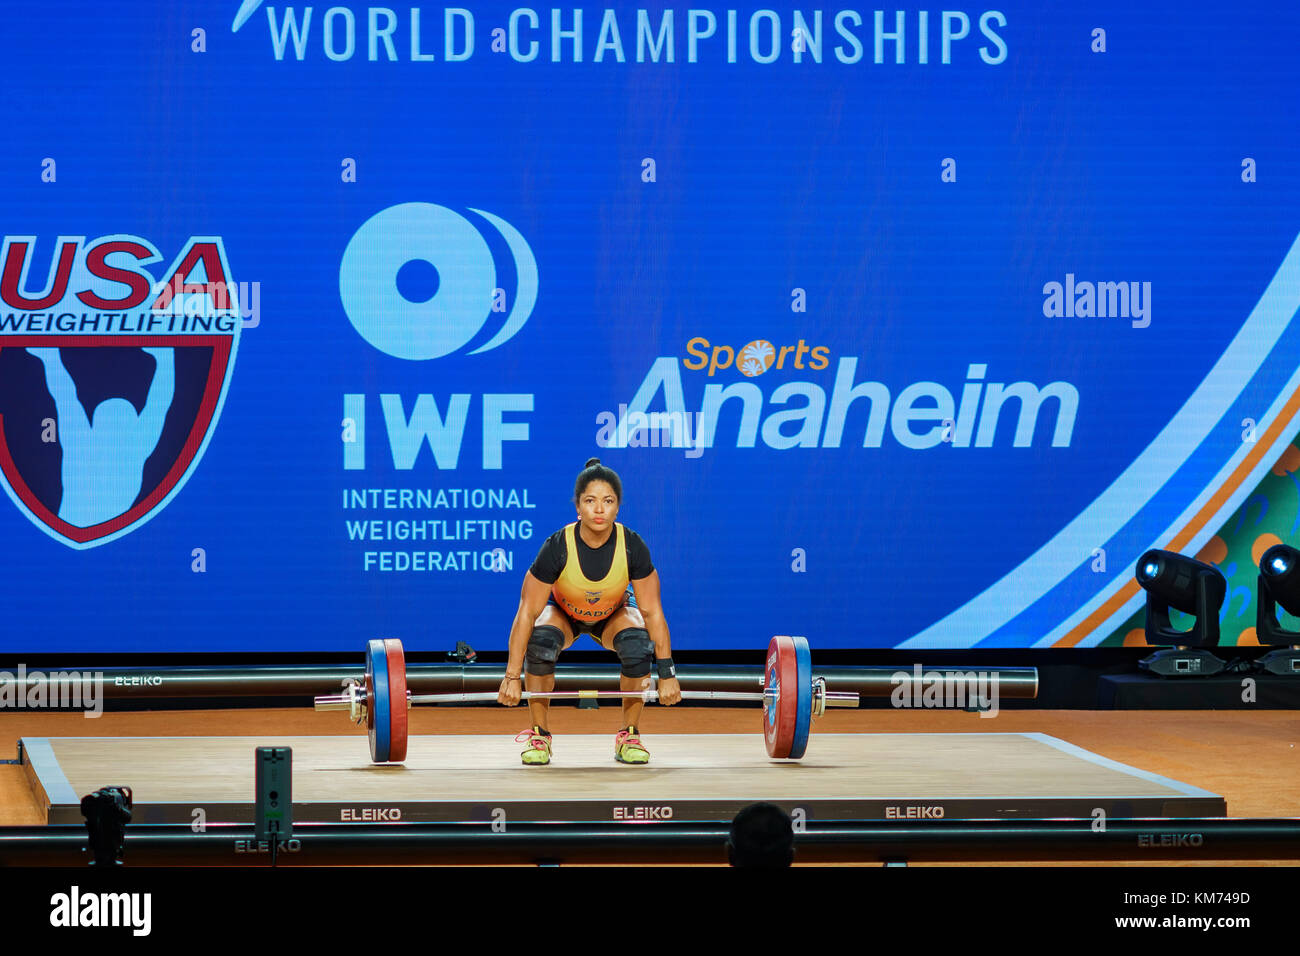 Anaheim, Nov 30: 2017 Escobar guerrero Maria Alexandra in international weightlifting Federation World Championships Stockbild